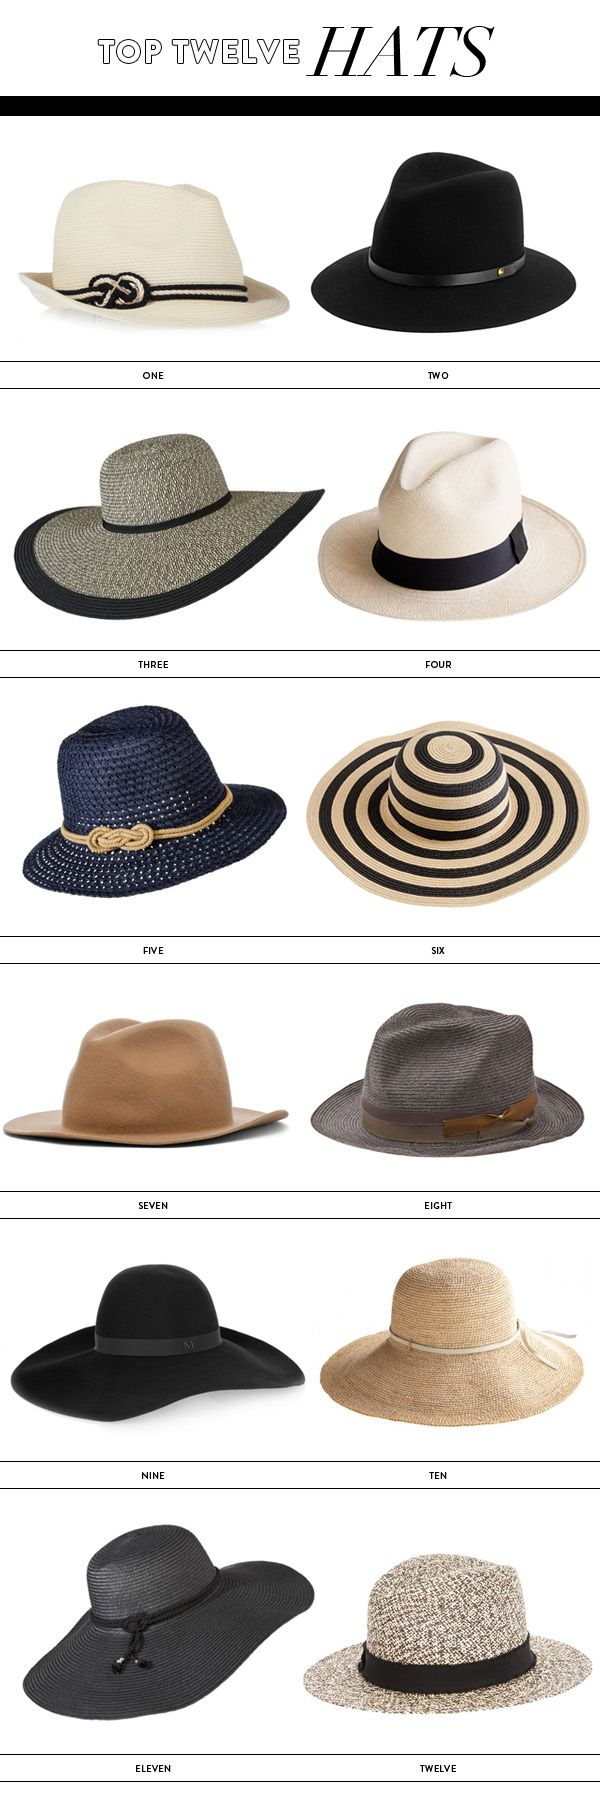 Our picks? Two, Seven, Eight and Nine.  What's yours? #Hats #Accents #Style